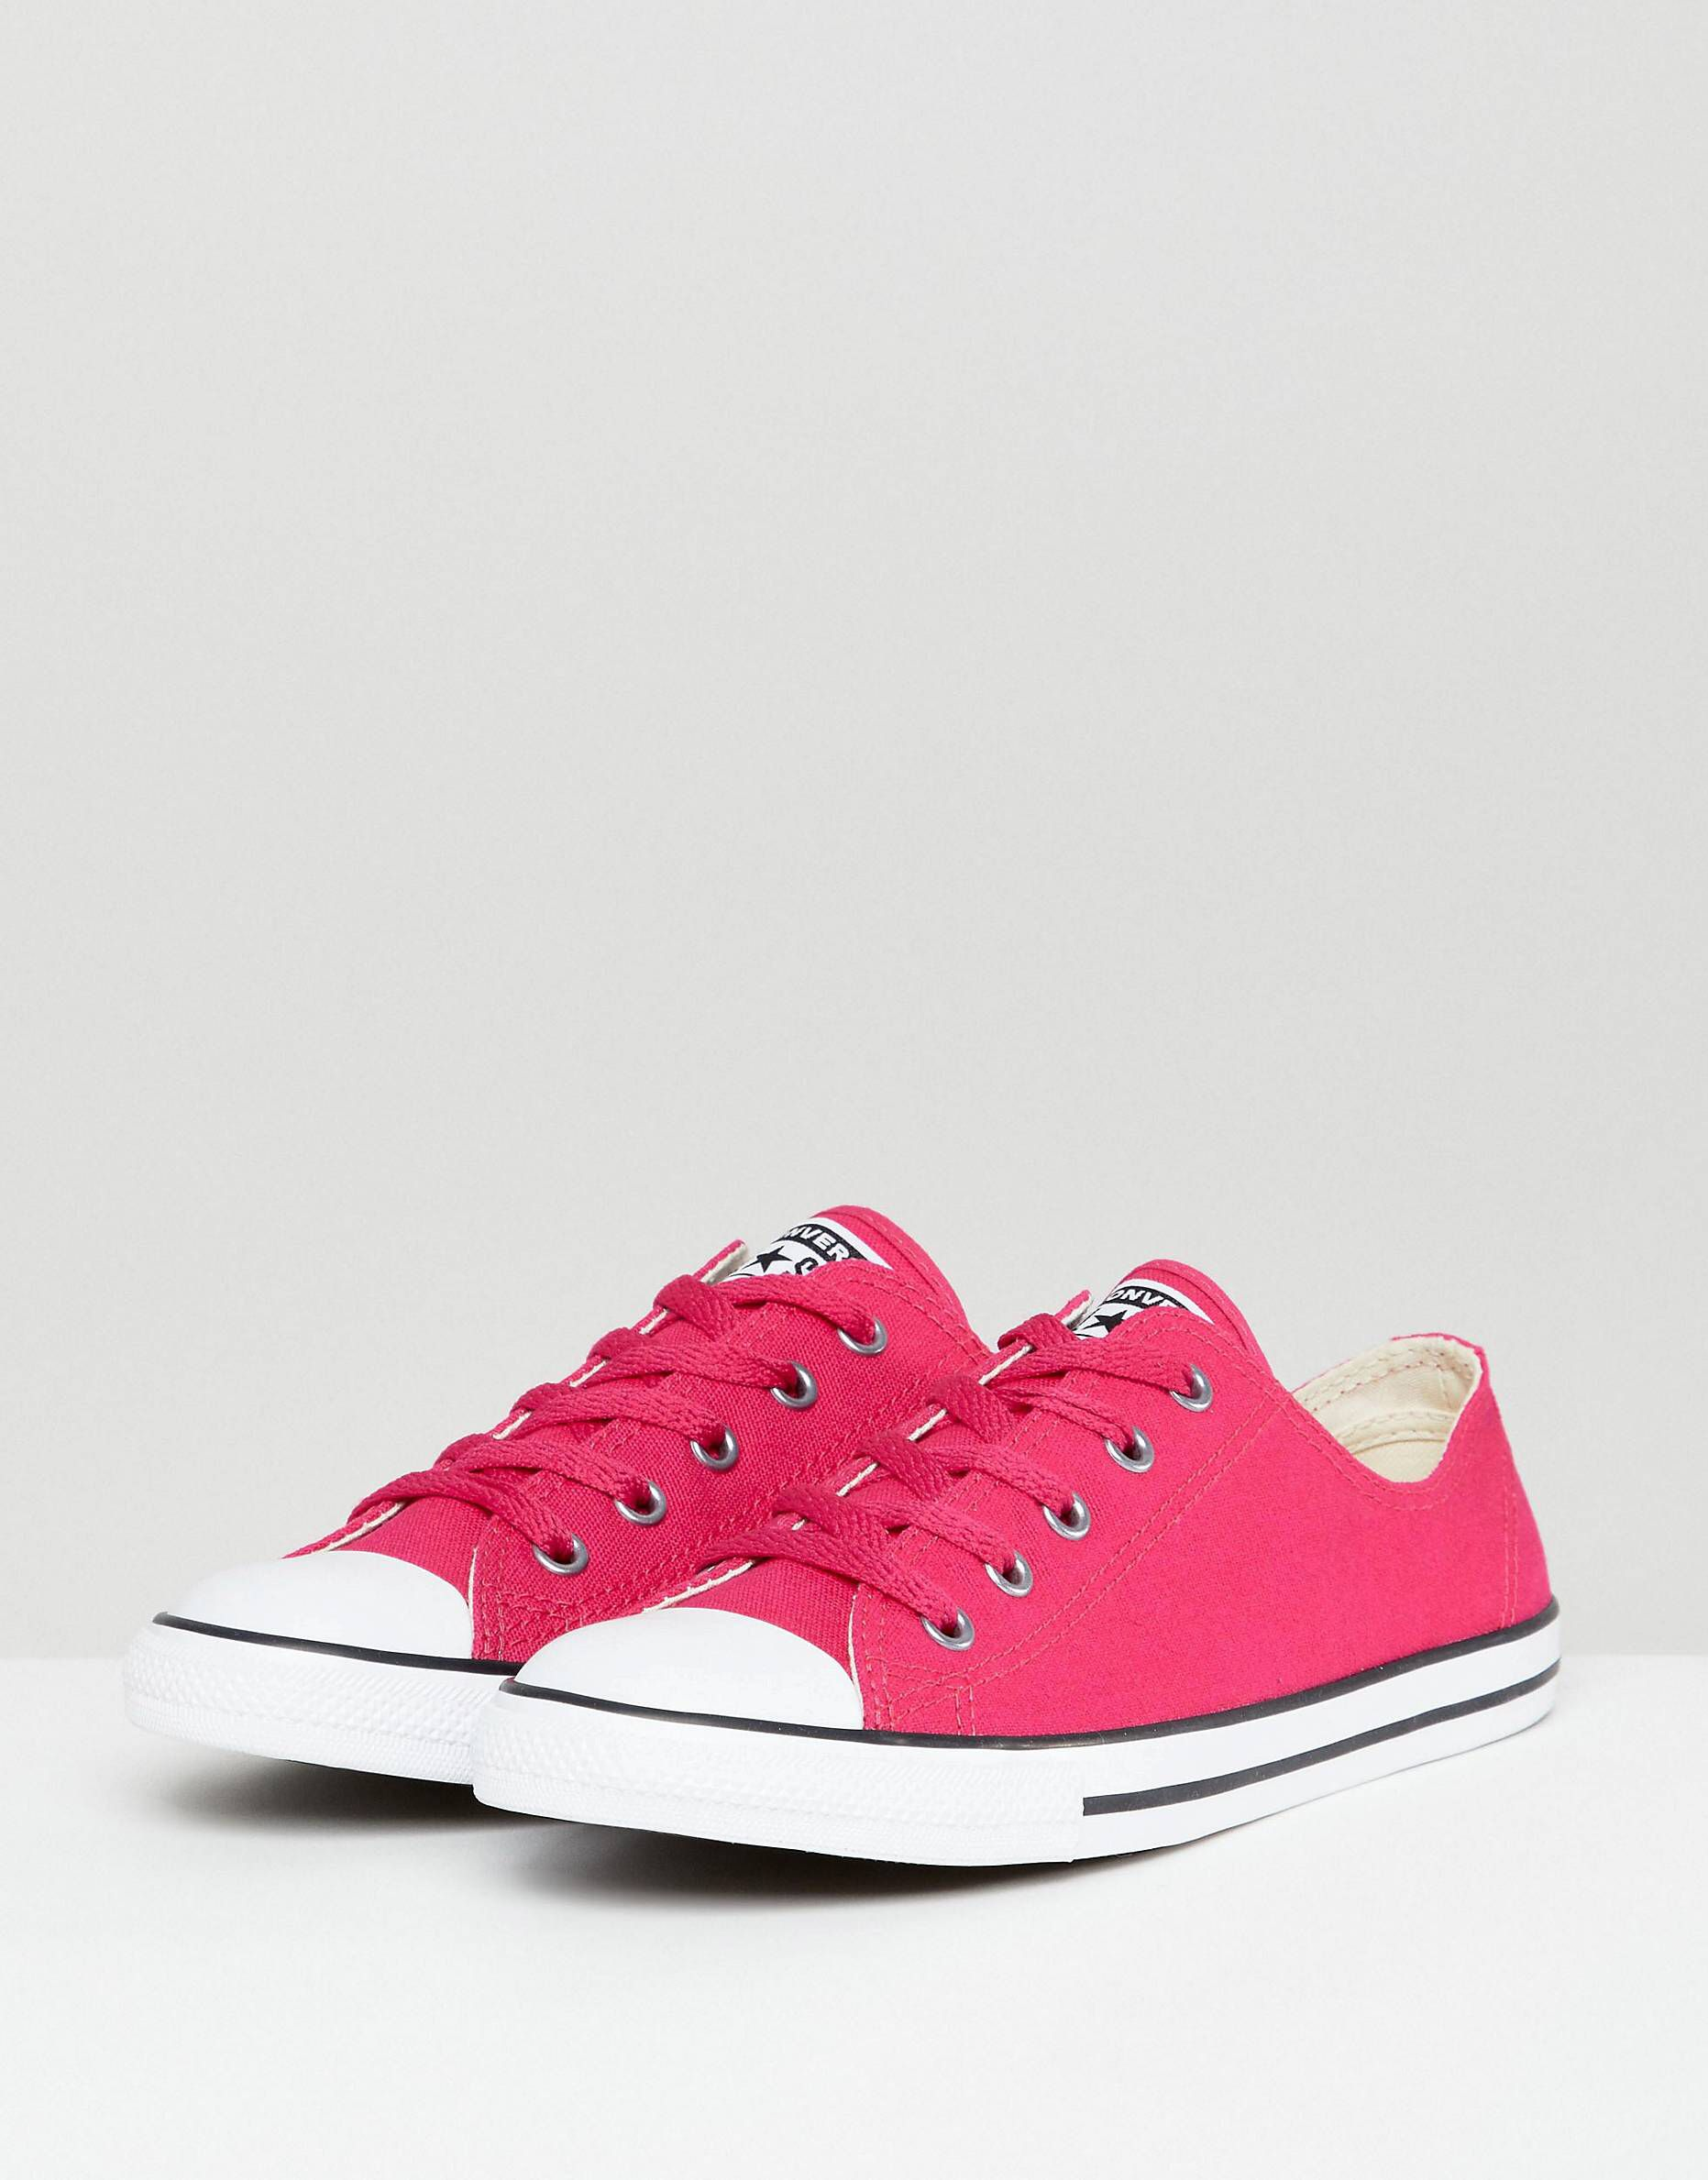 bambas converse all star dainty